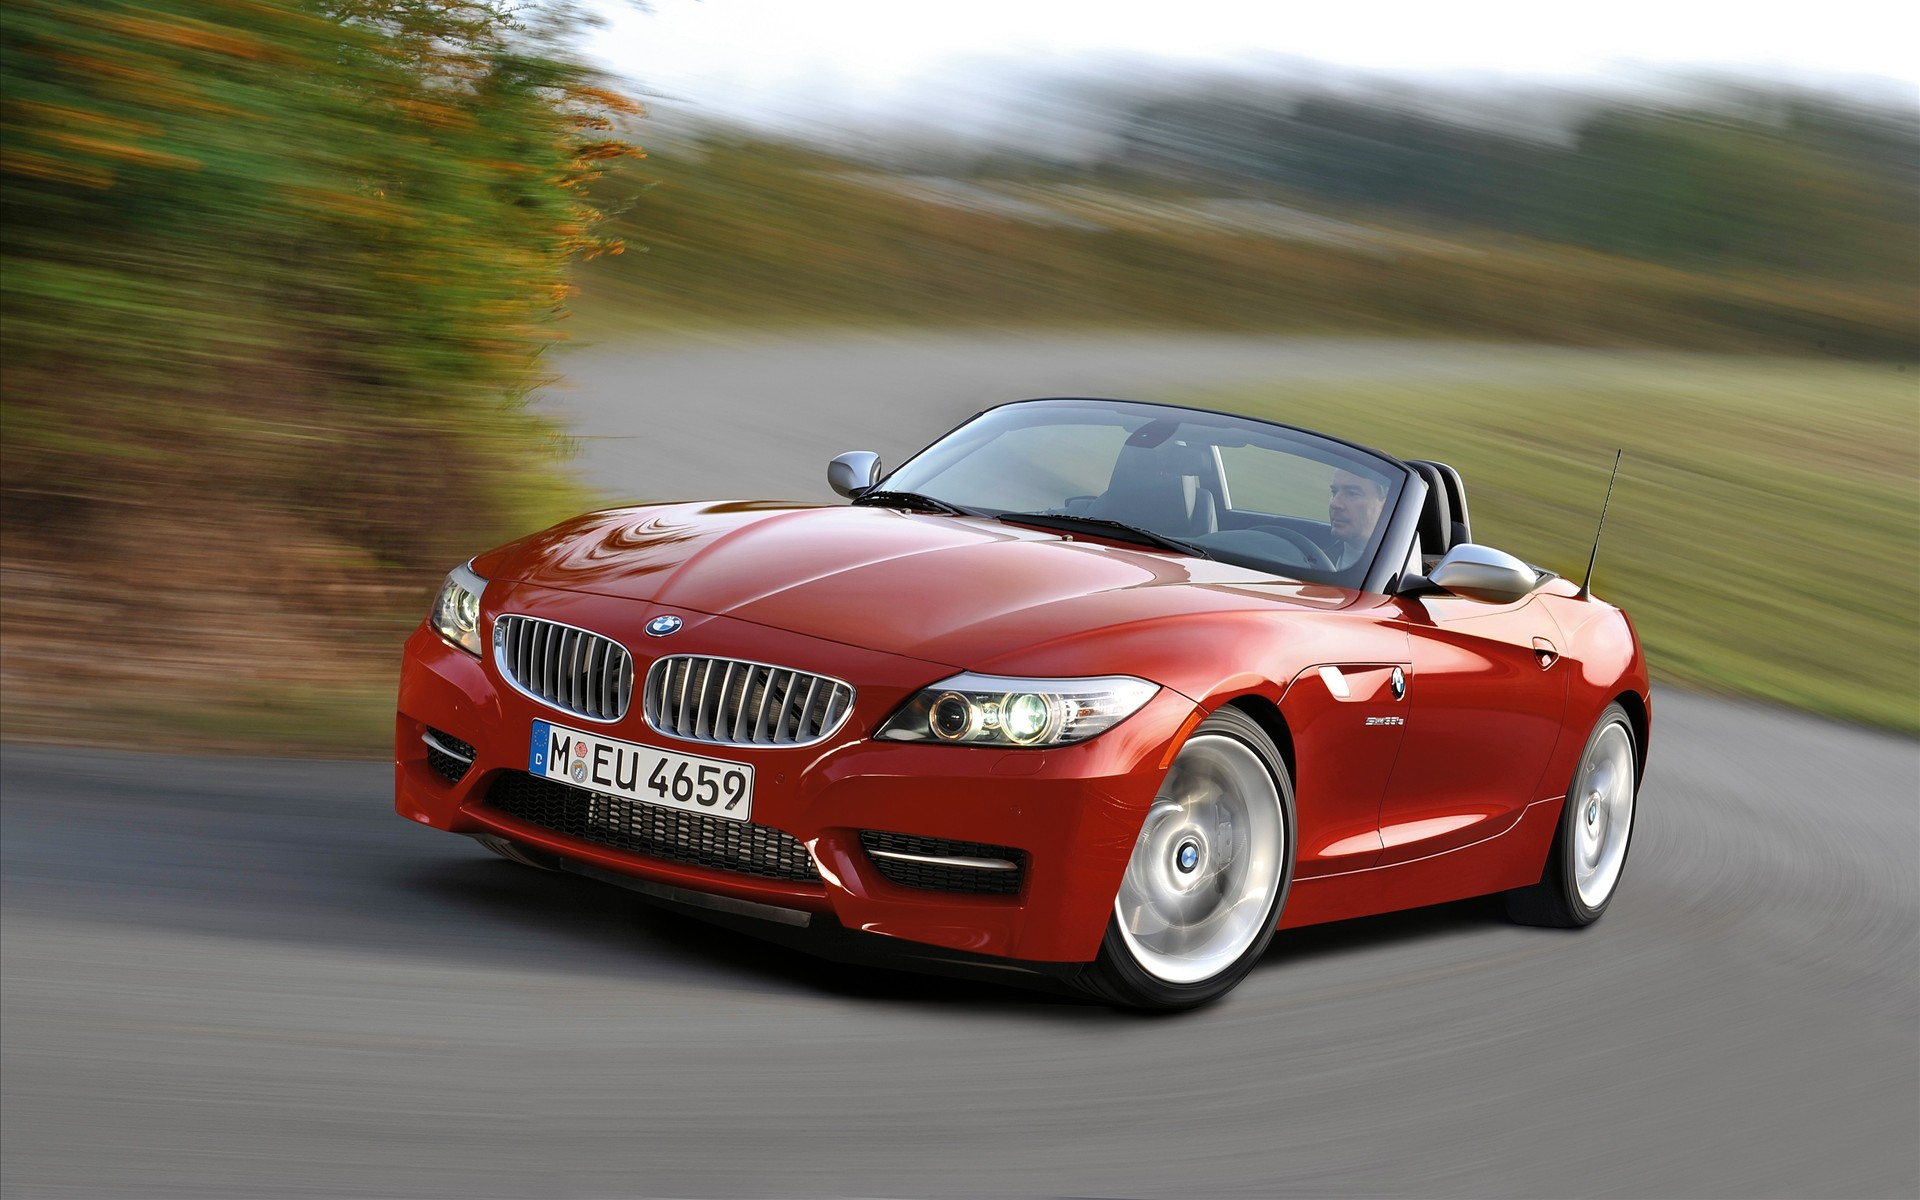 New BMW Z4 2011 Car 303.38 Kb